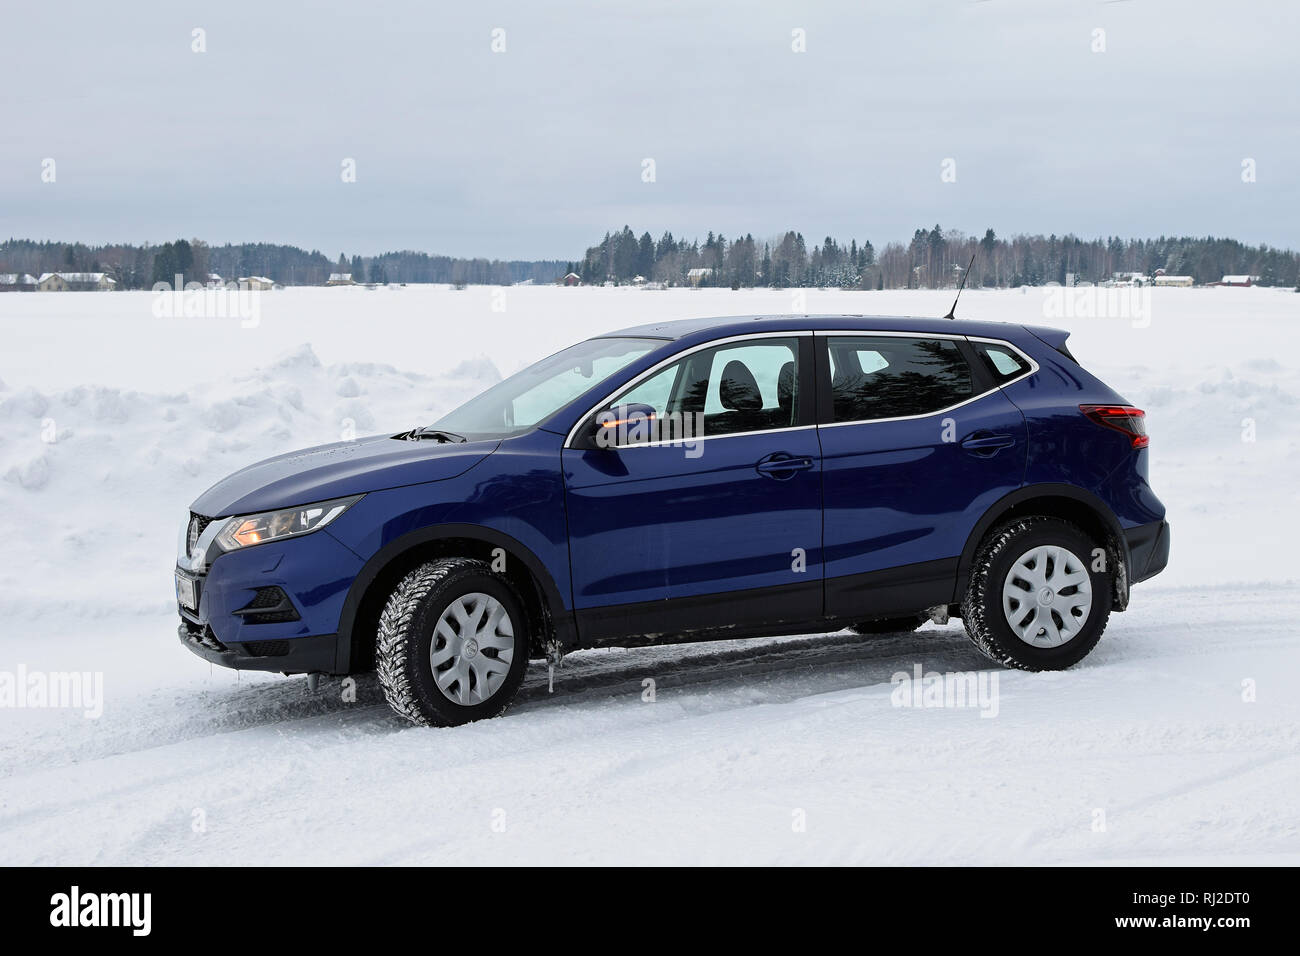 Aura, Finland - February 2, 2019: New Nissan Qashqai 2019 model (color ink blue) in snowy winter landscape. - Stock Image